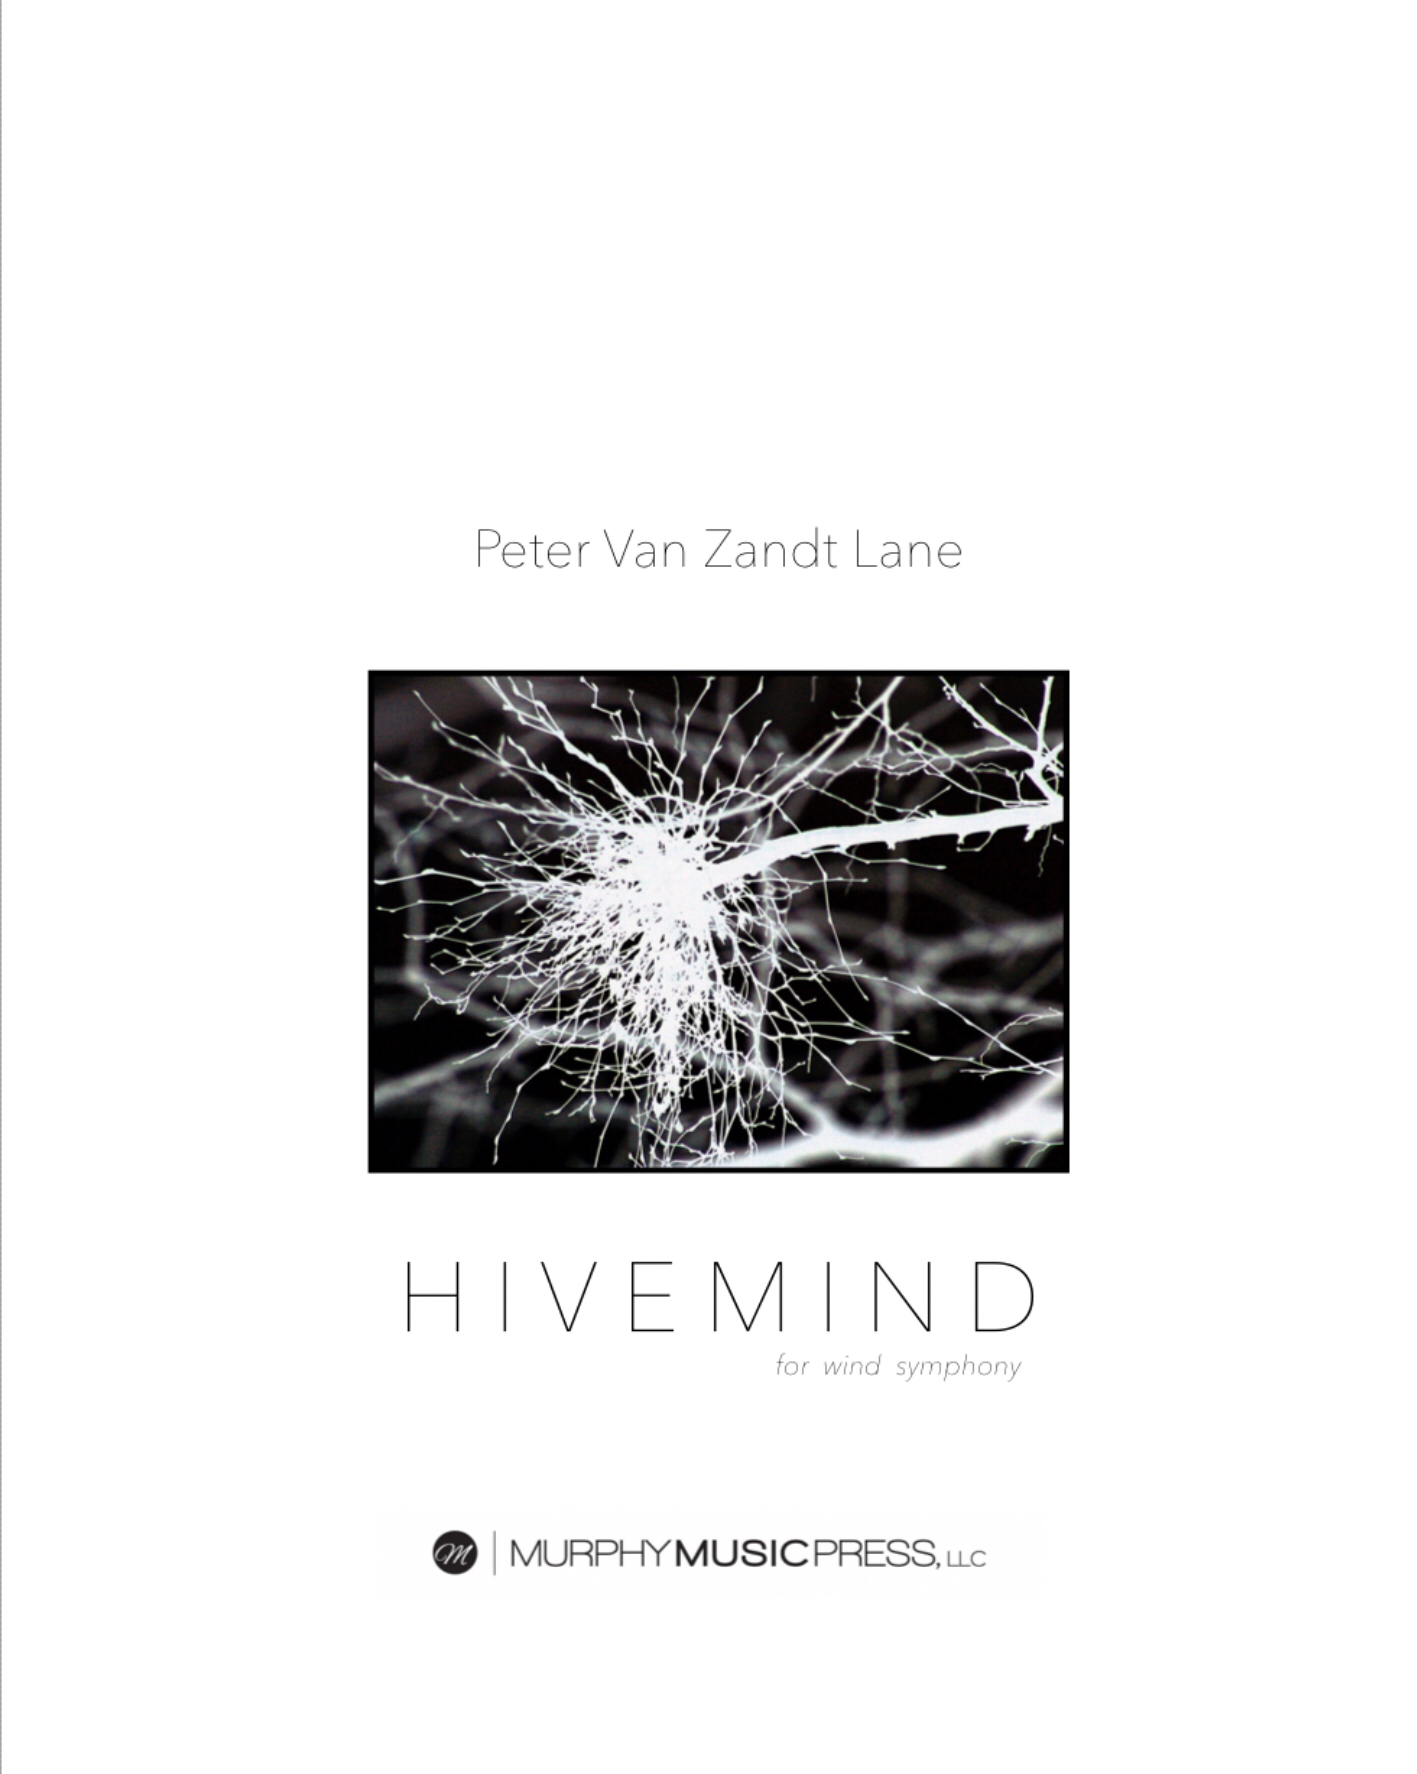 Hivemind  by Peter Van Zandt Lane